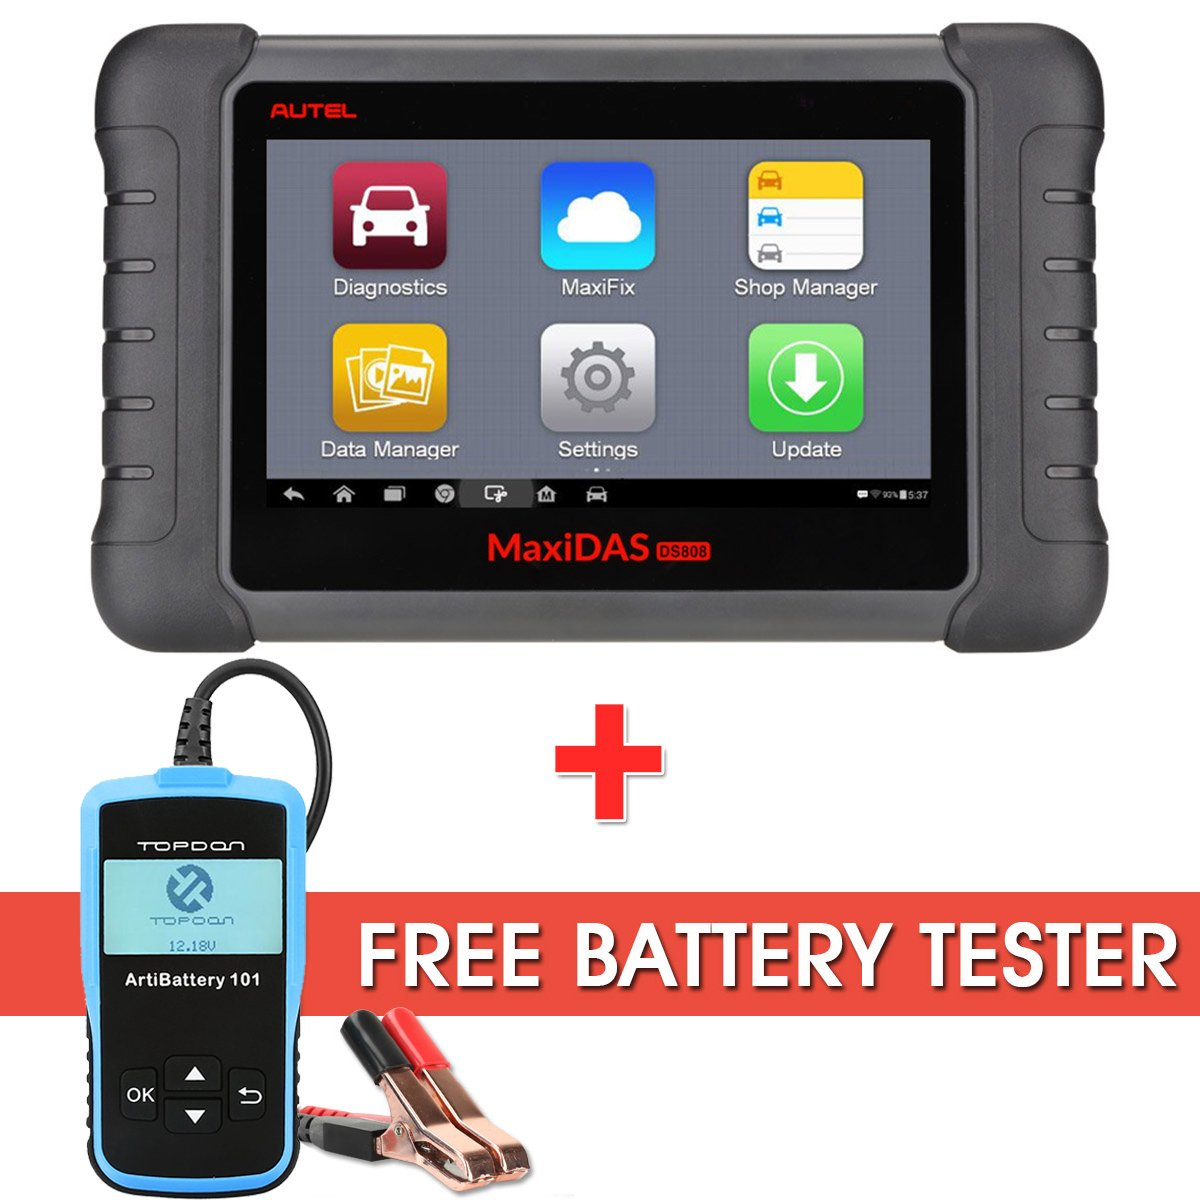 Autel DS808 OBD2 Diagnostic Scanner MaxiDAS OE-Level Coverage Key Coding and Wi-Fi Support Coding Tool with Free Battery Tester